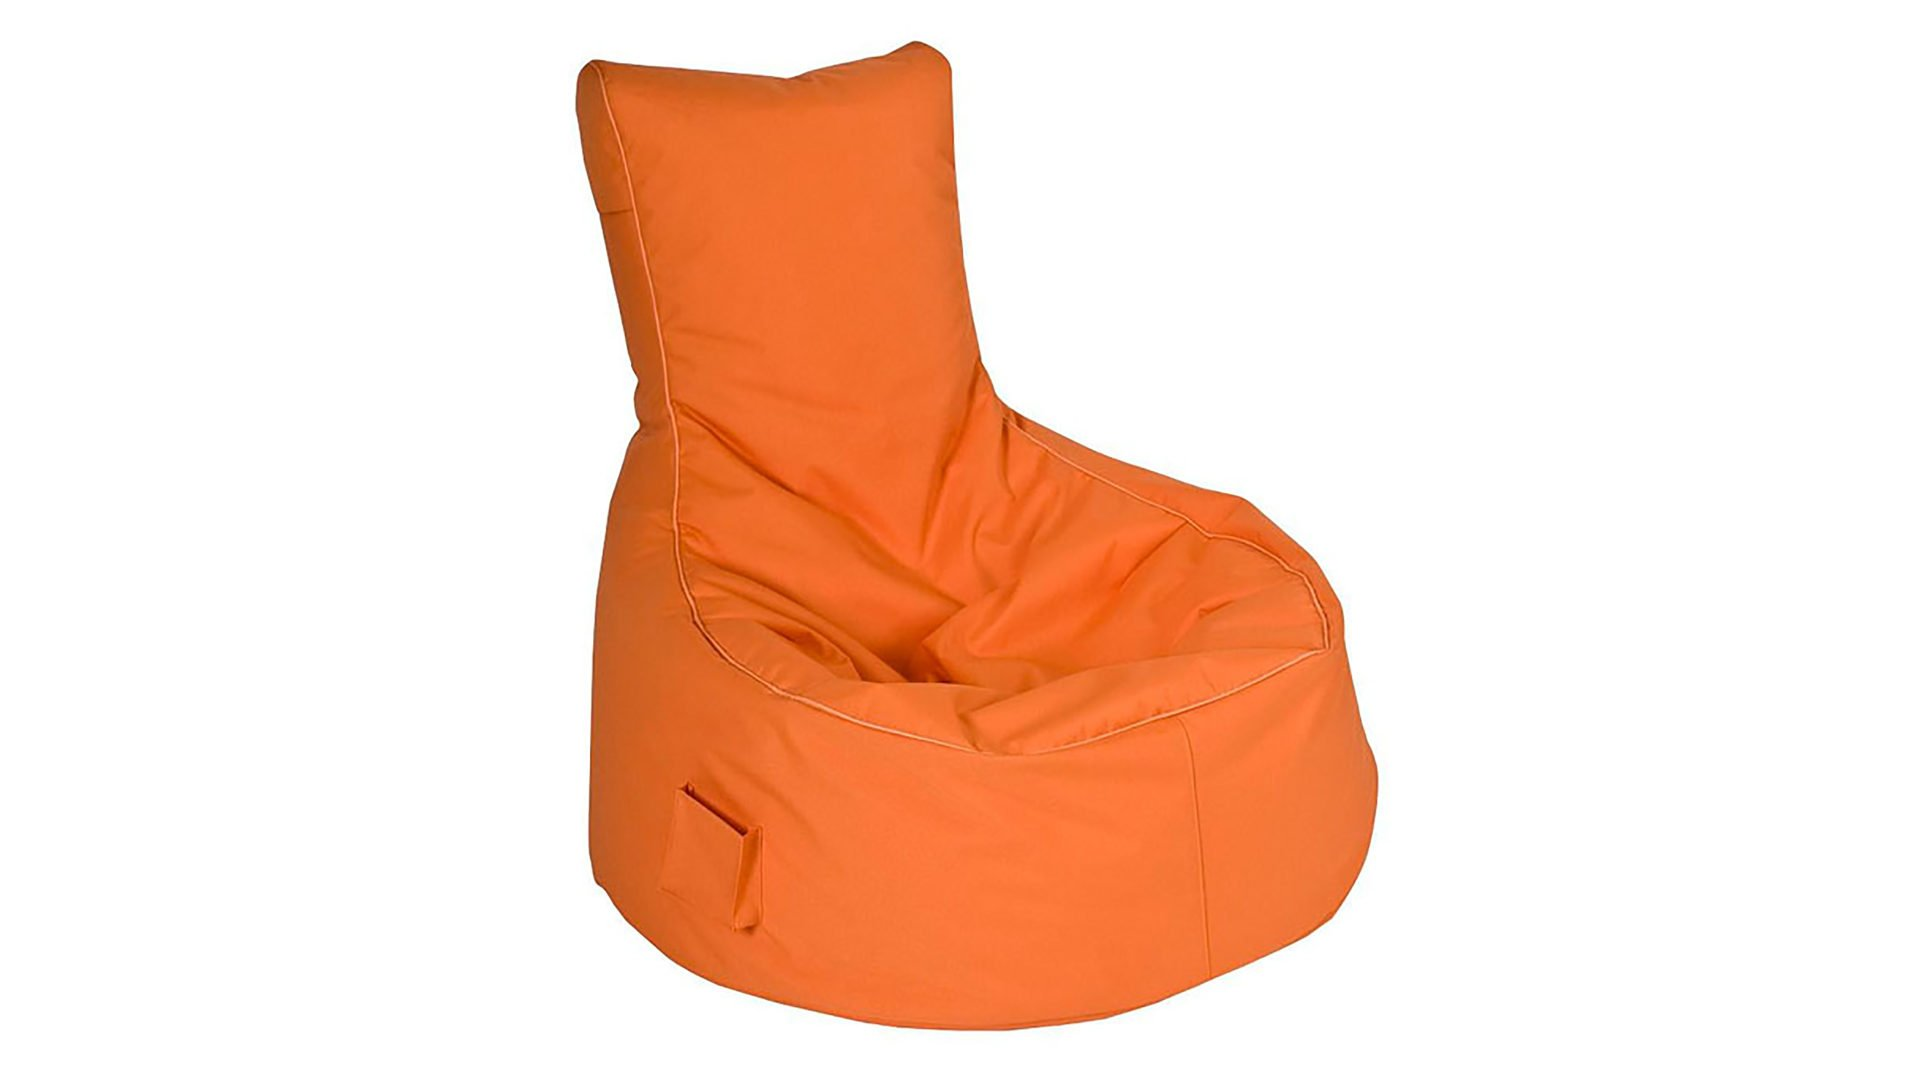 SITTING POINT Sitzsack-Sessel Scuba Swing als originelles Sitzmöbel